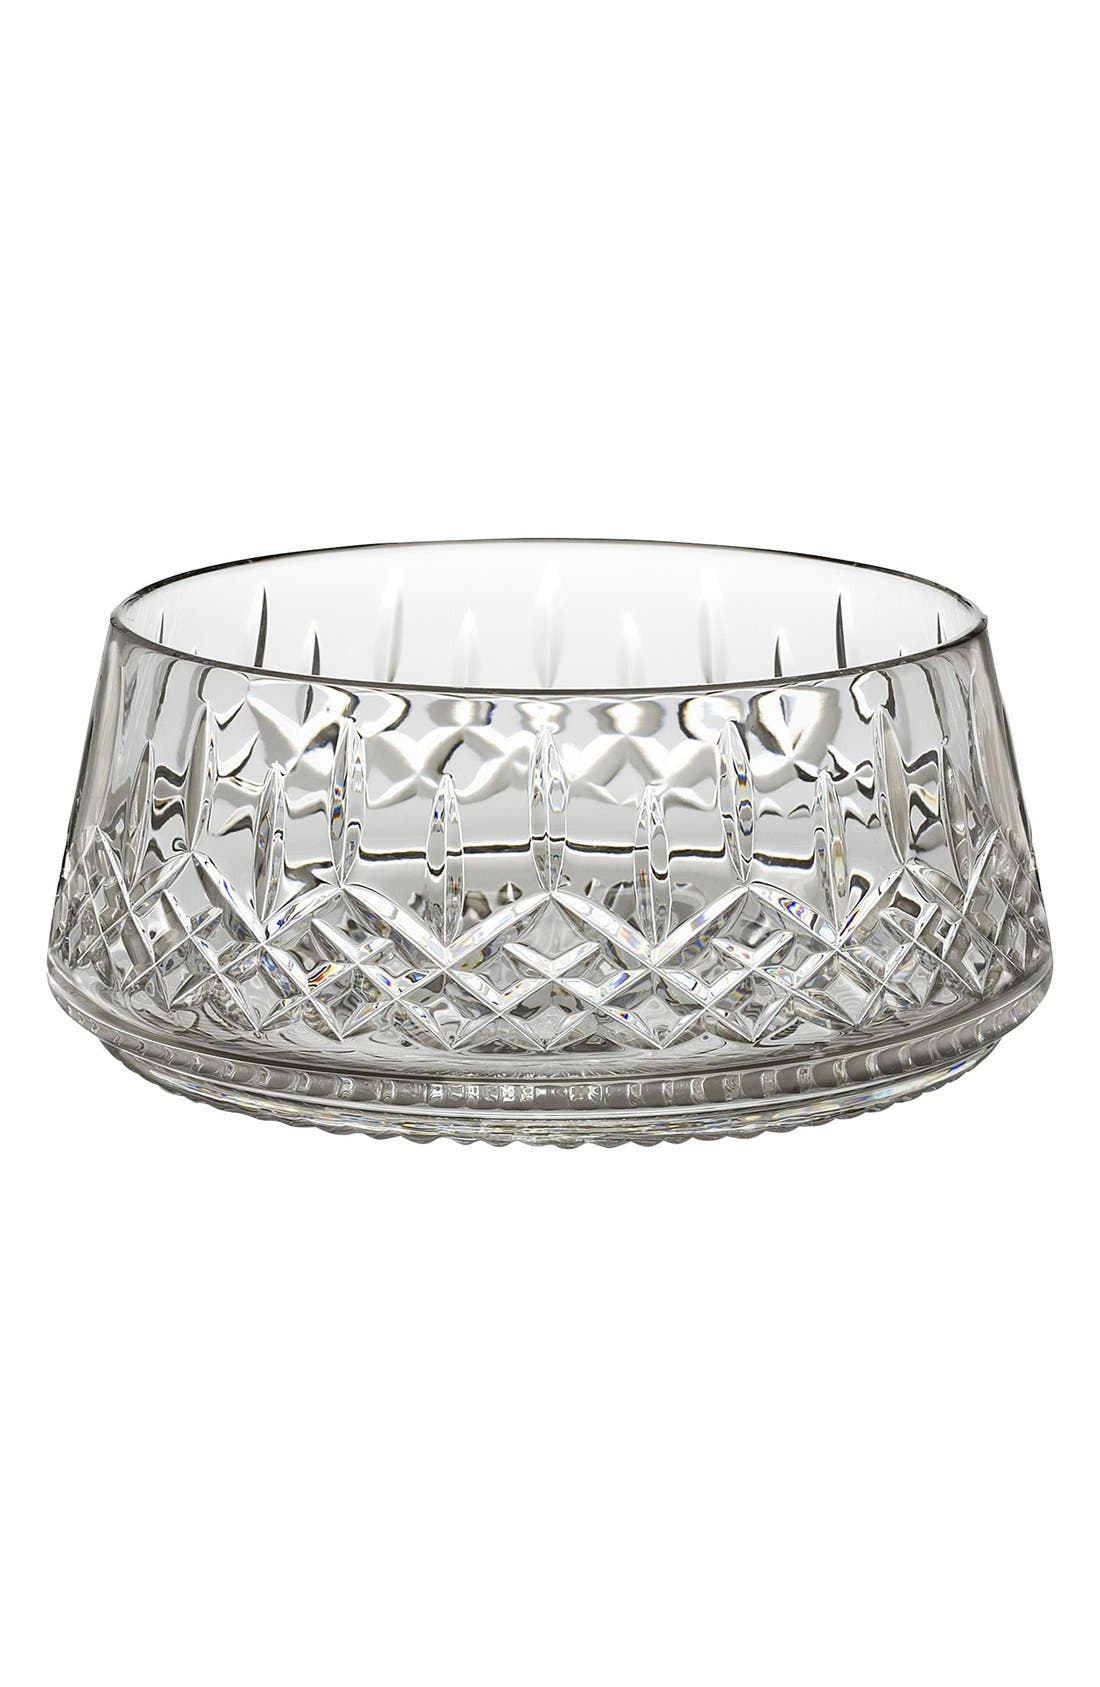 'Lismore' Lead Crystal Salad Bowl,                             Main thumbnail 1, color,                             100